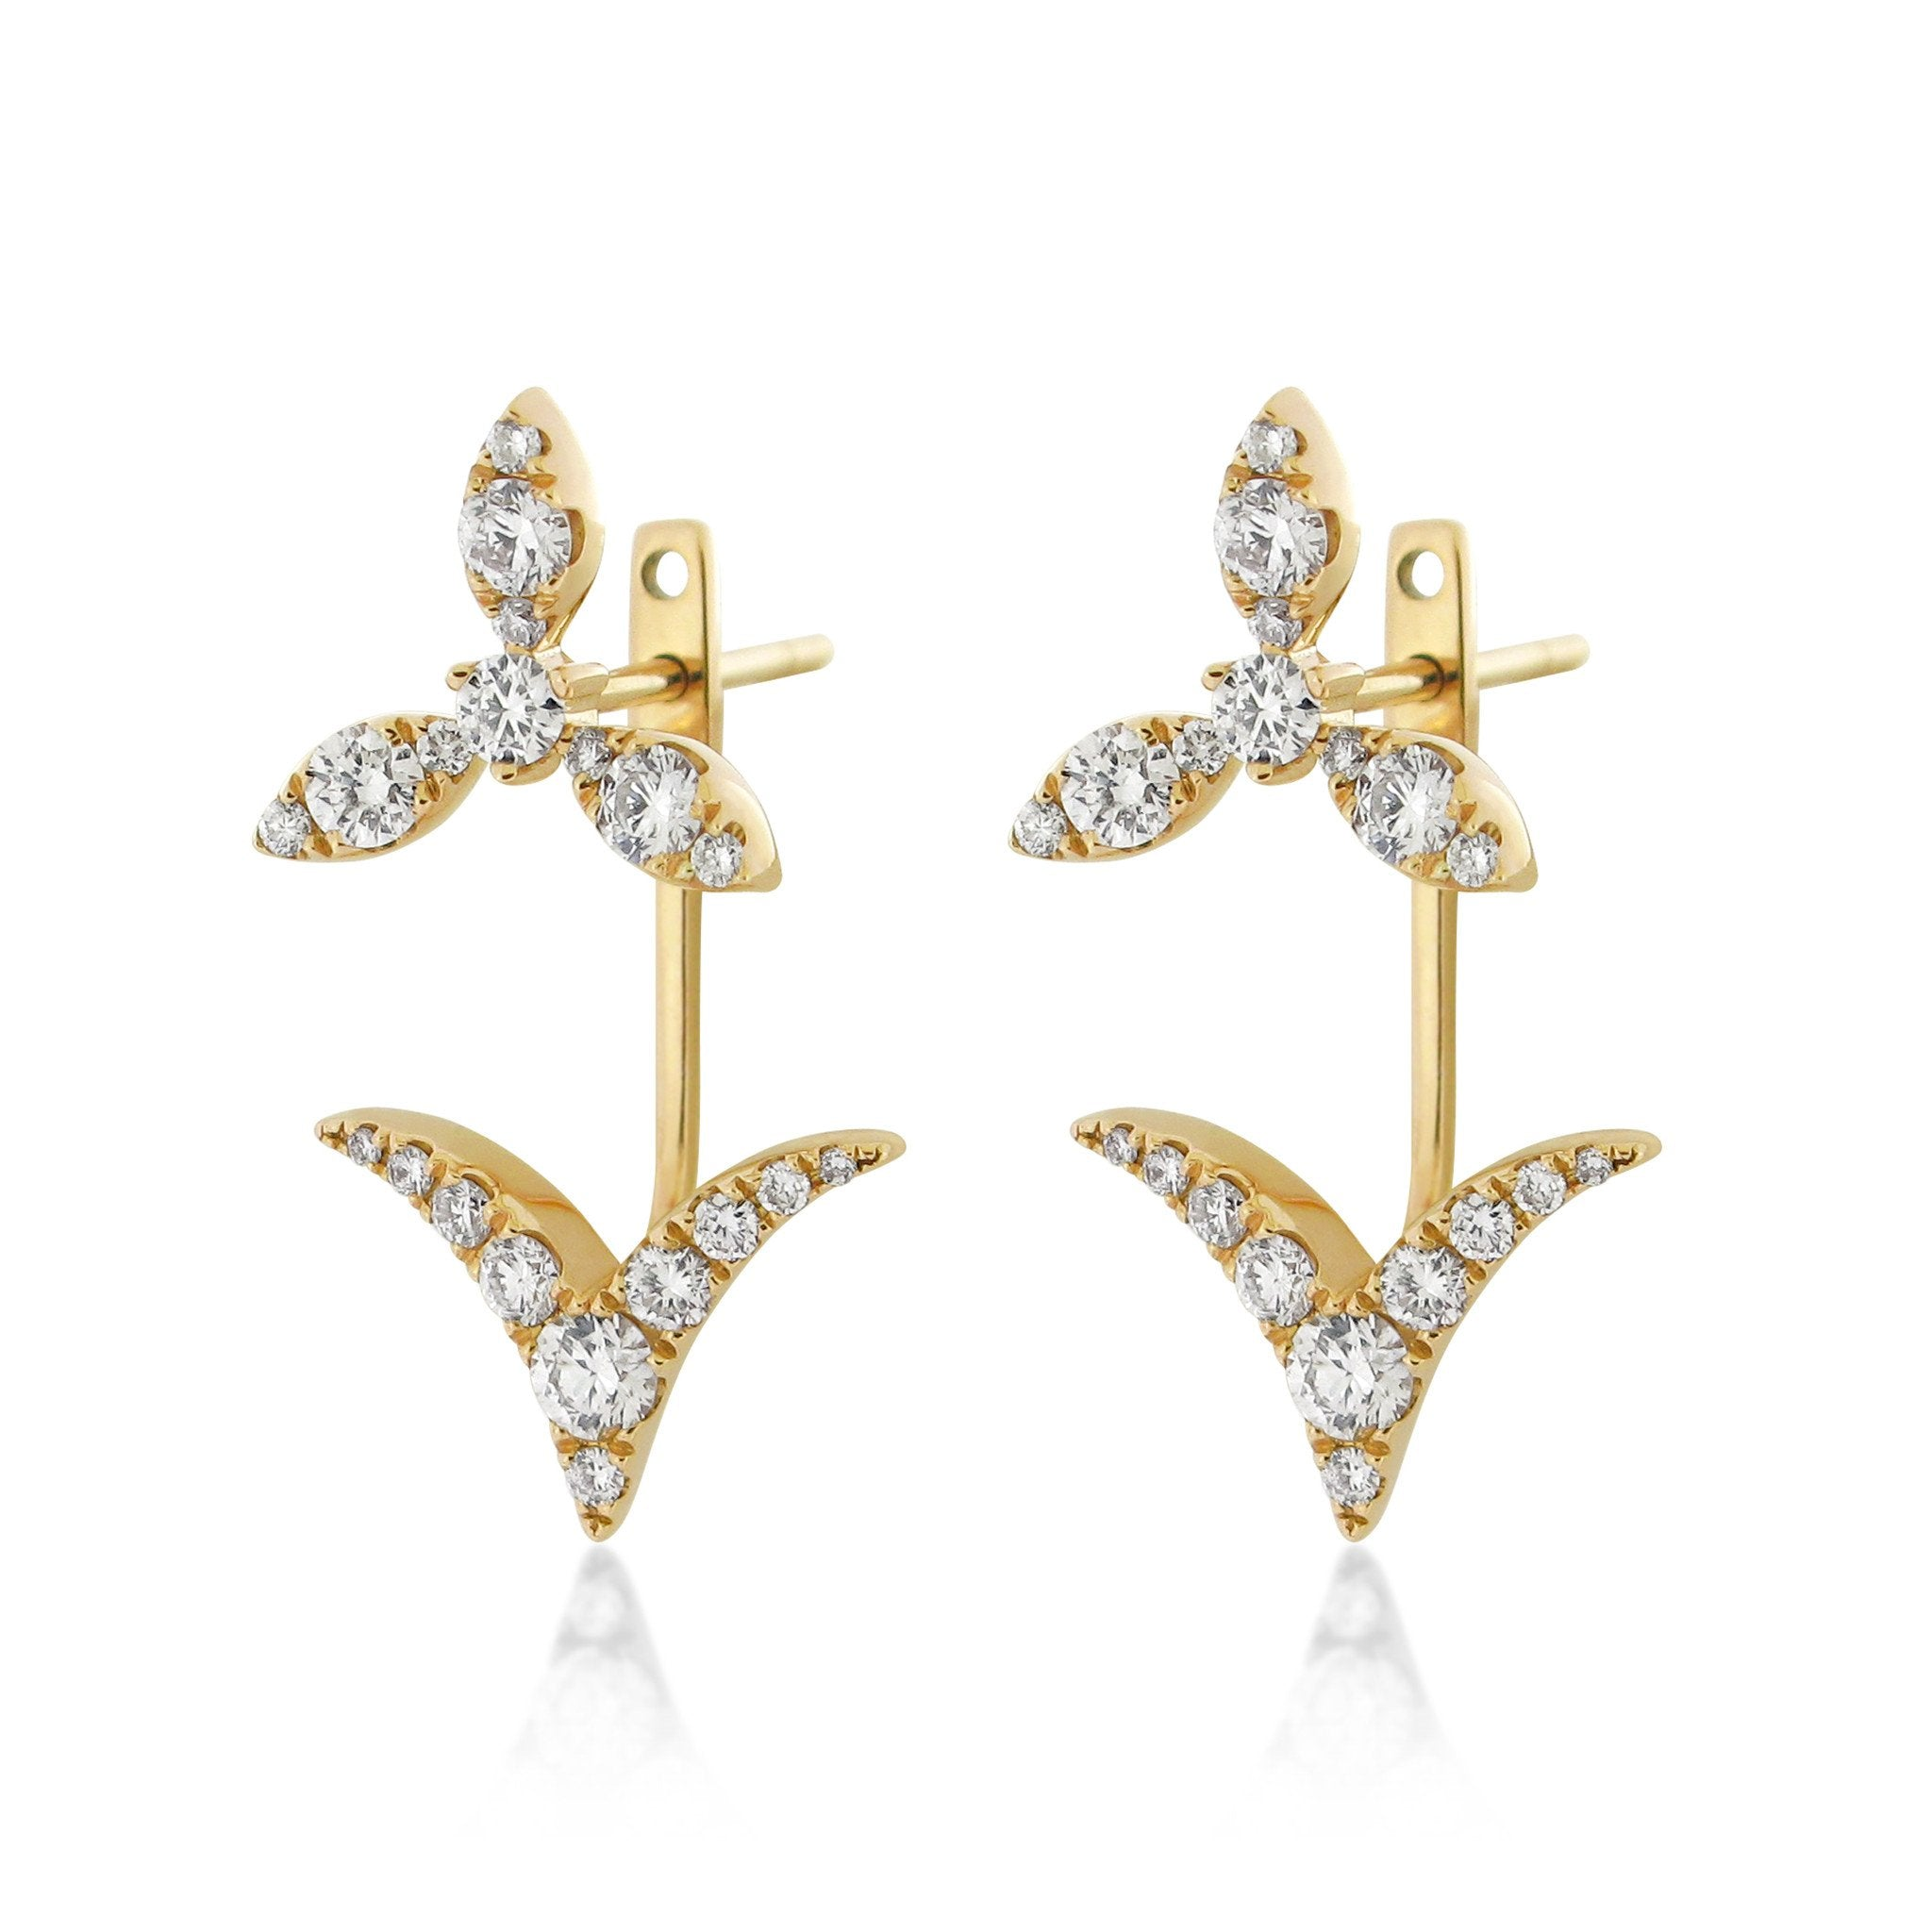 VOLANT Ear Jacket Earrings , Earrings - Fine Jewelry, RoCHIC, RoCHIC Designer Fine Jewelry